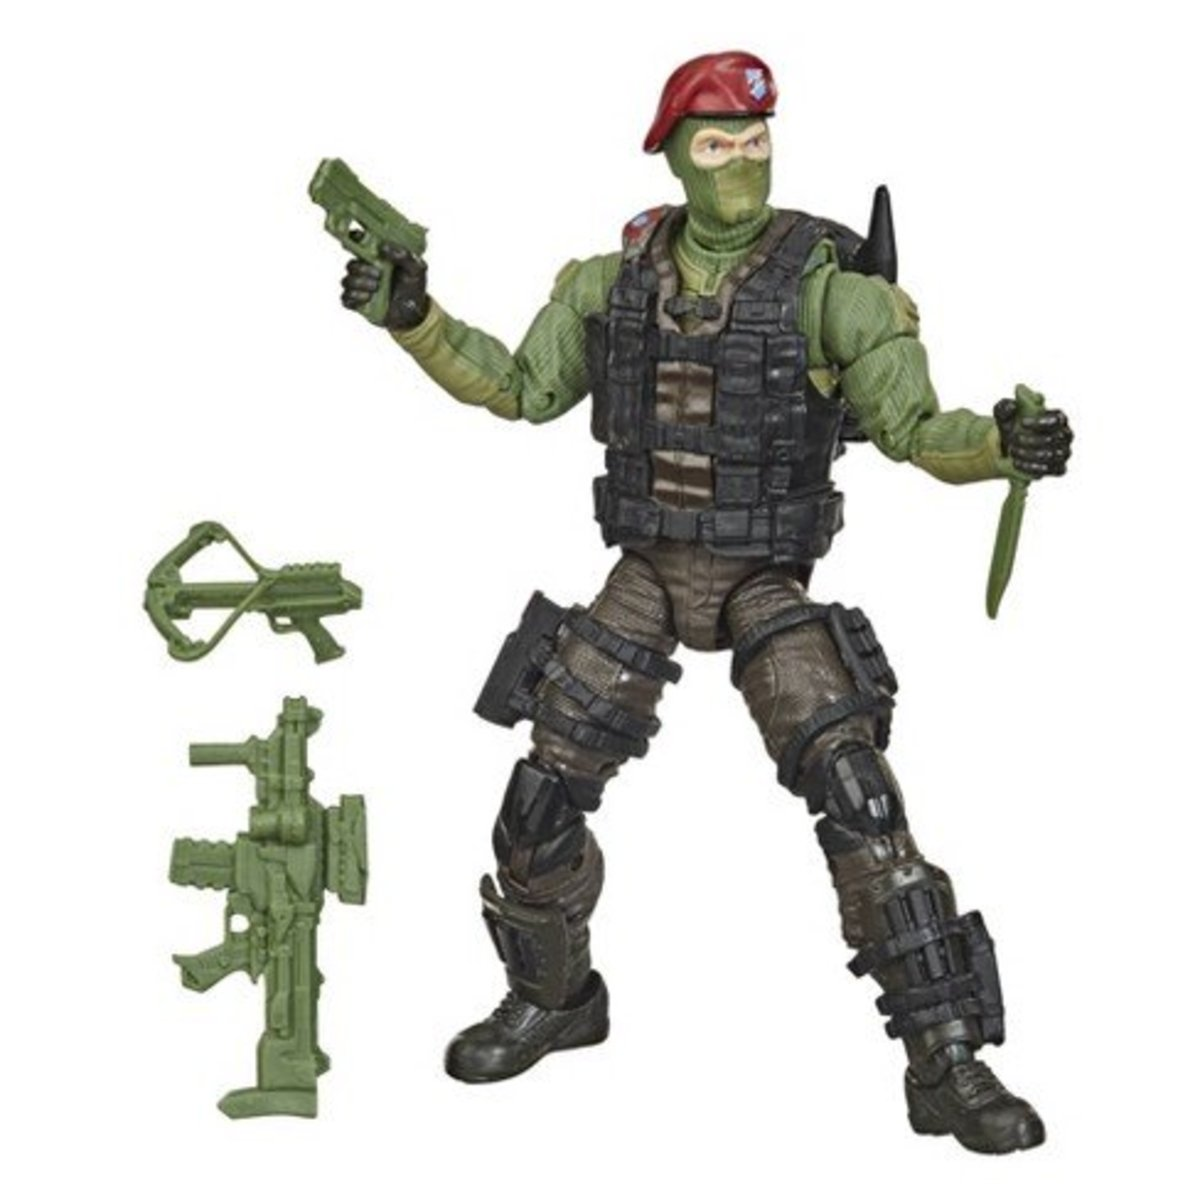 In 1964, G.I. Joe was the most popular holiday gift.